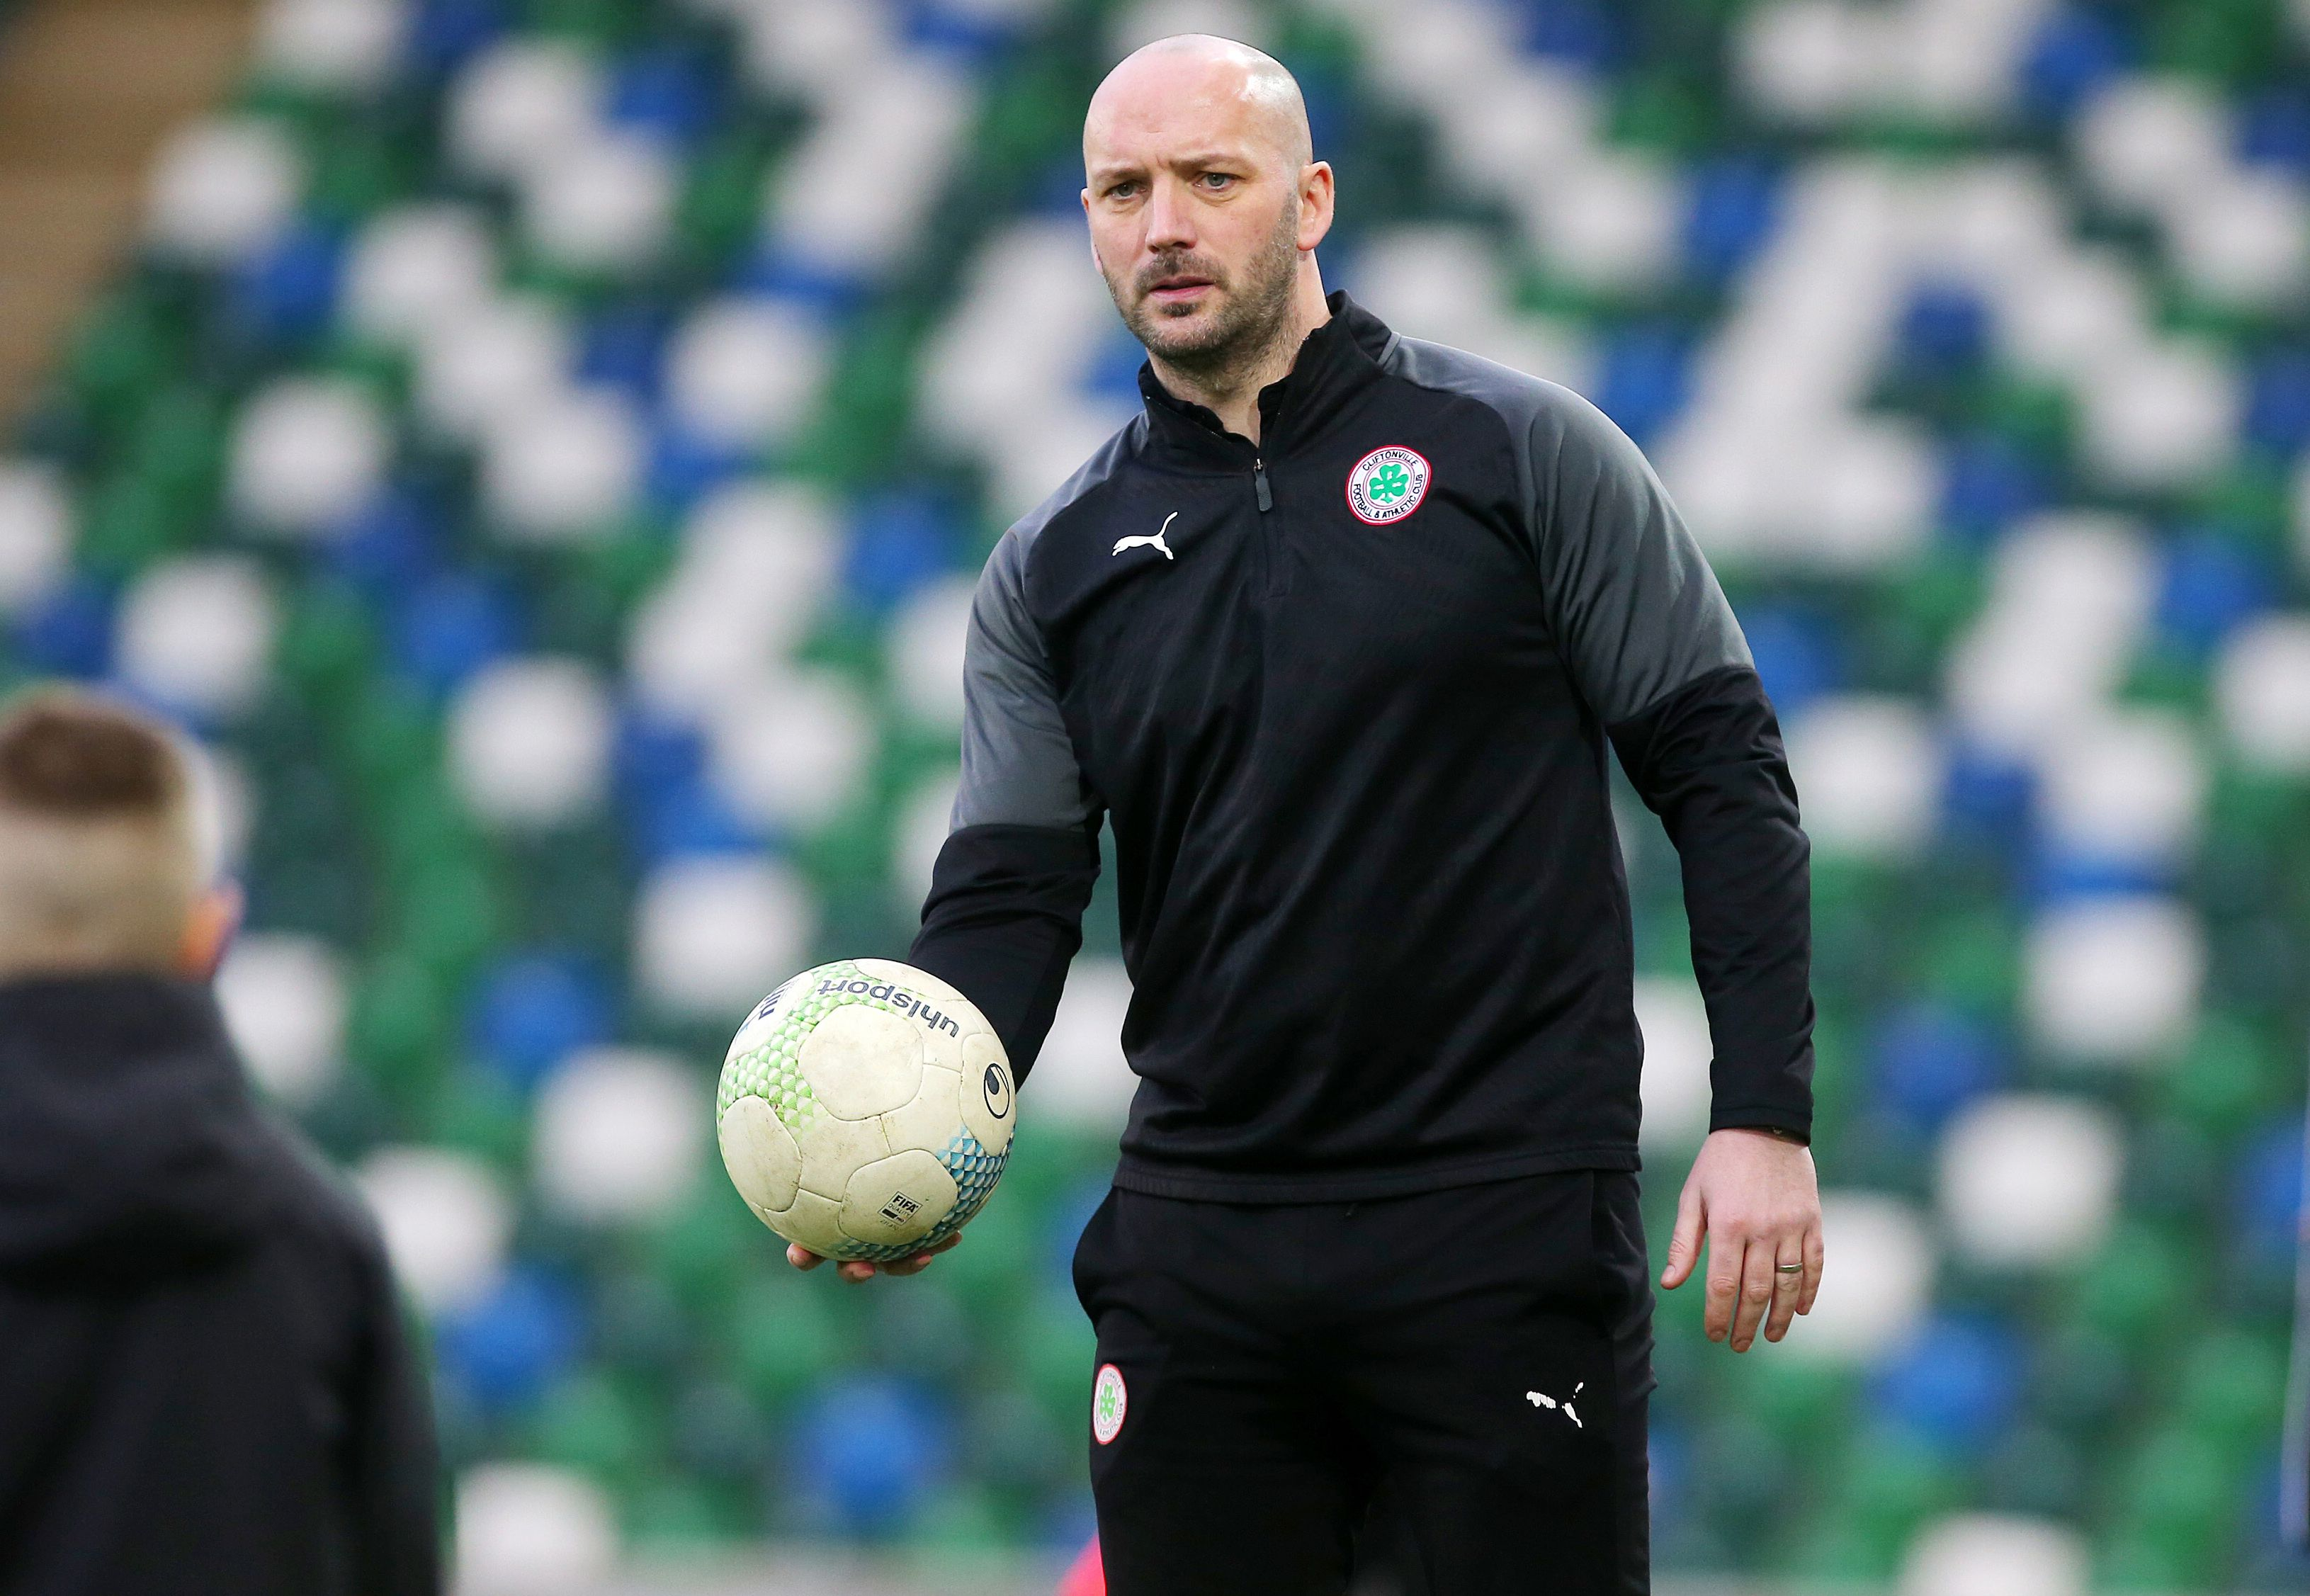 Cliftonville manager Paddy McLaughlin admits the hectic run of games has proved a huge test for his players